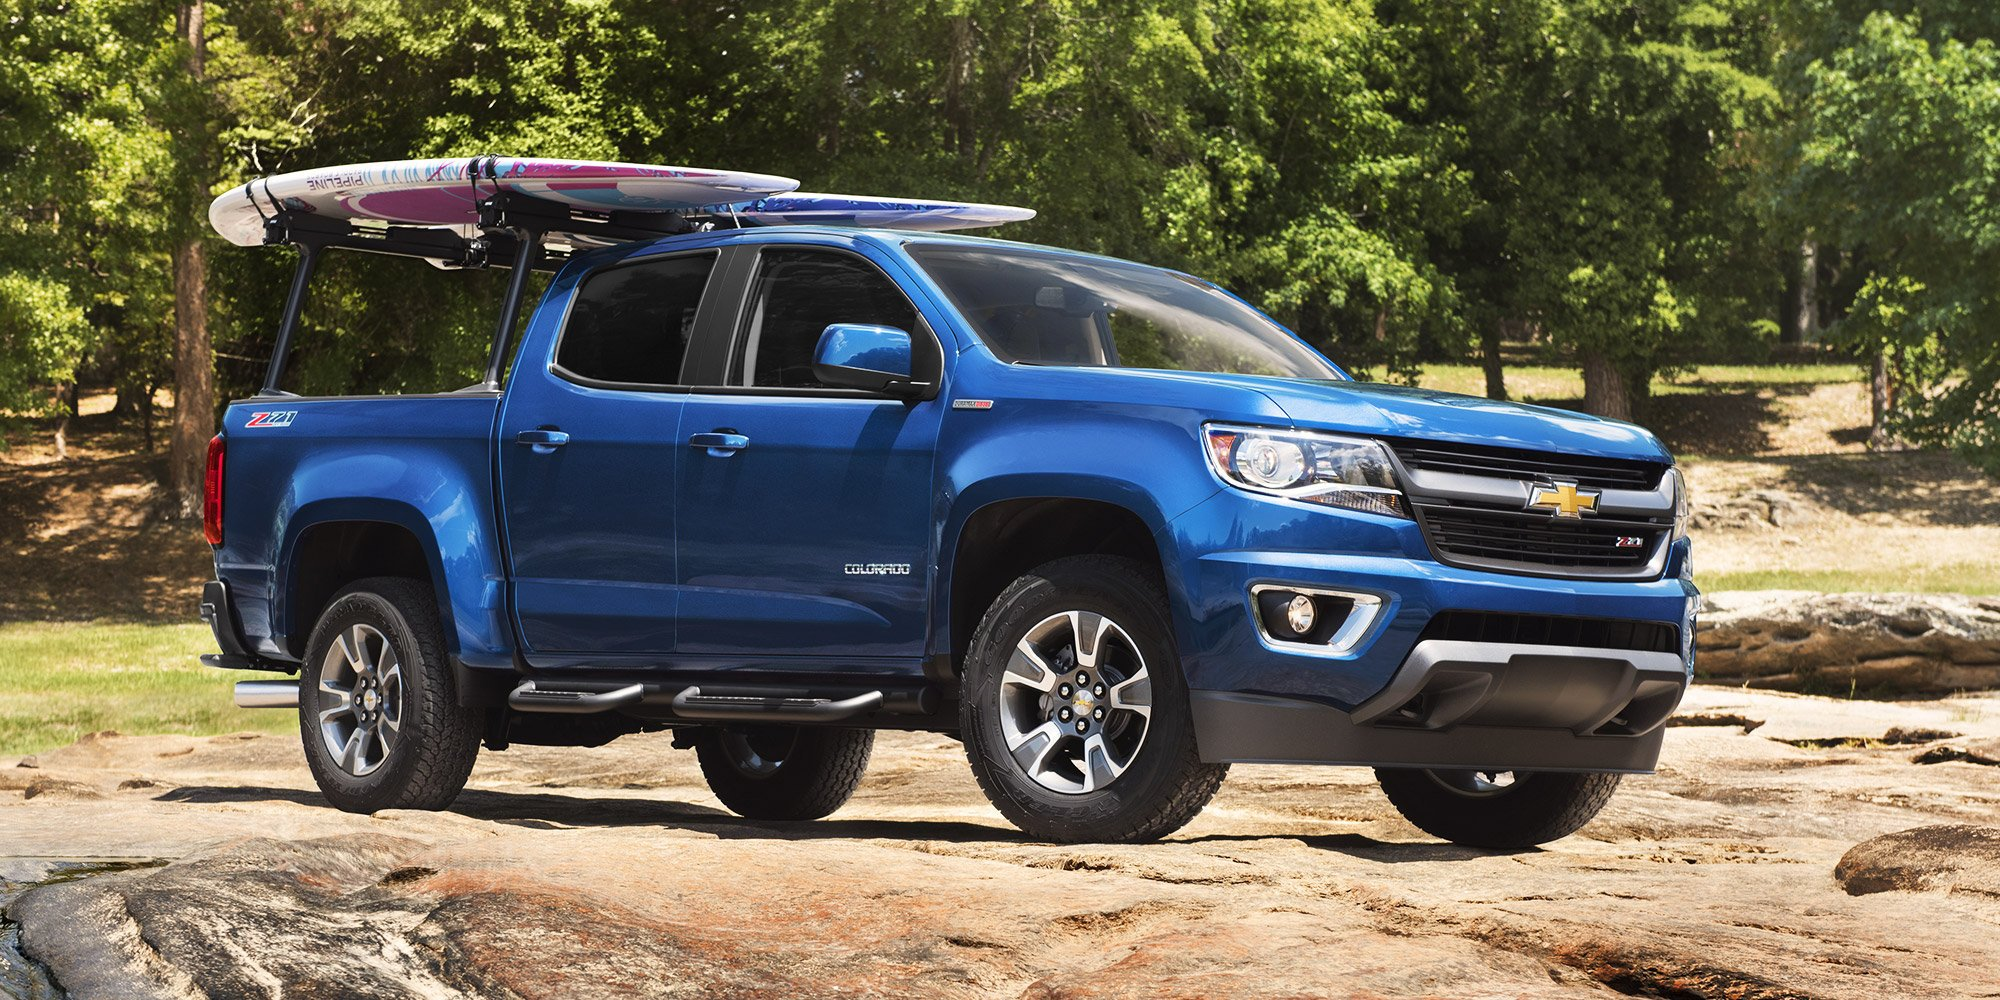 New Chevy Colorado Buy Lease or Finance